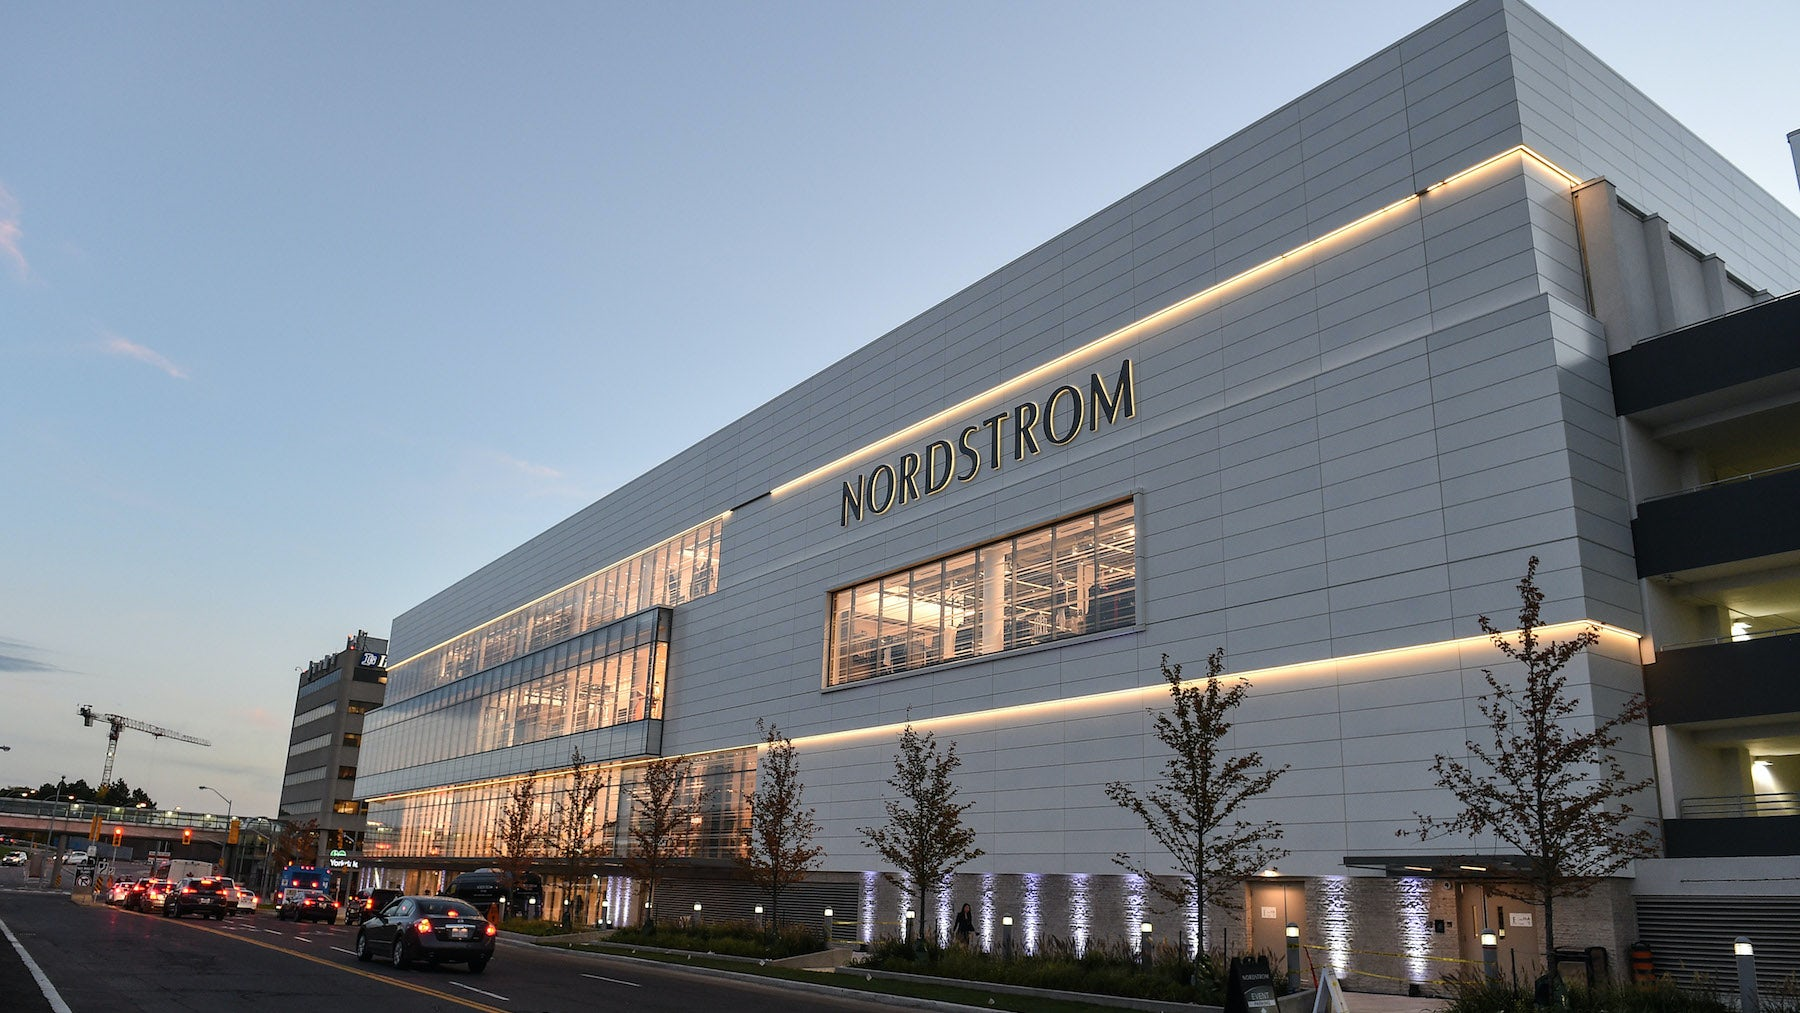 Nordstrom Shares Slip as It Fails to Avoid Retail Slump